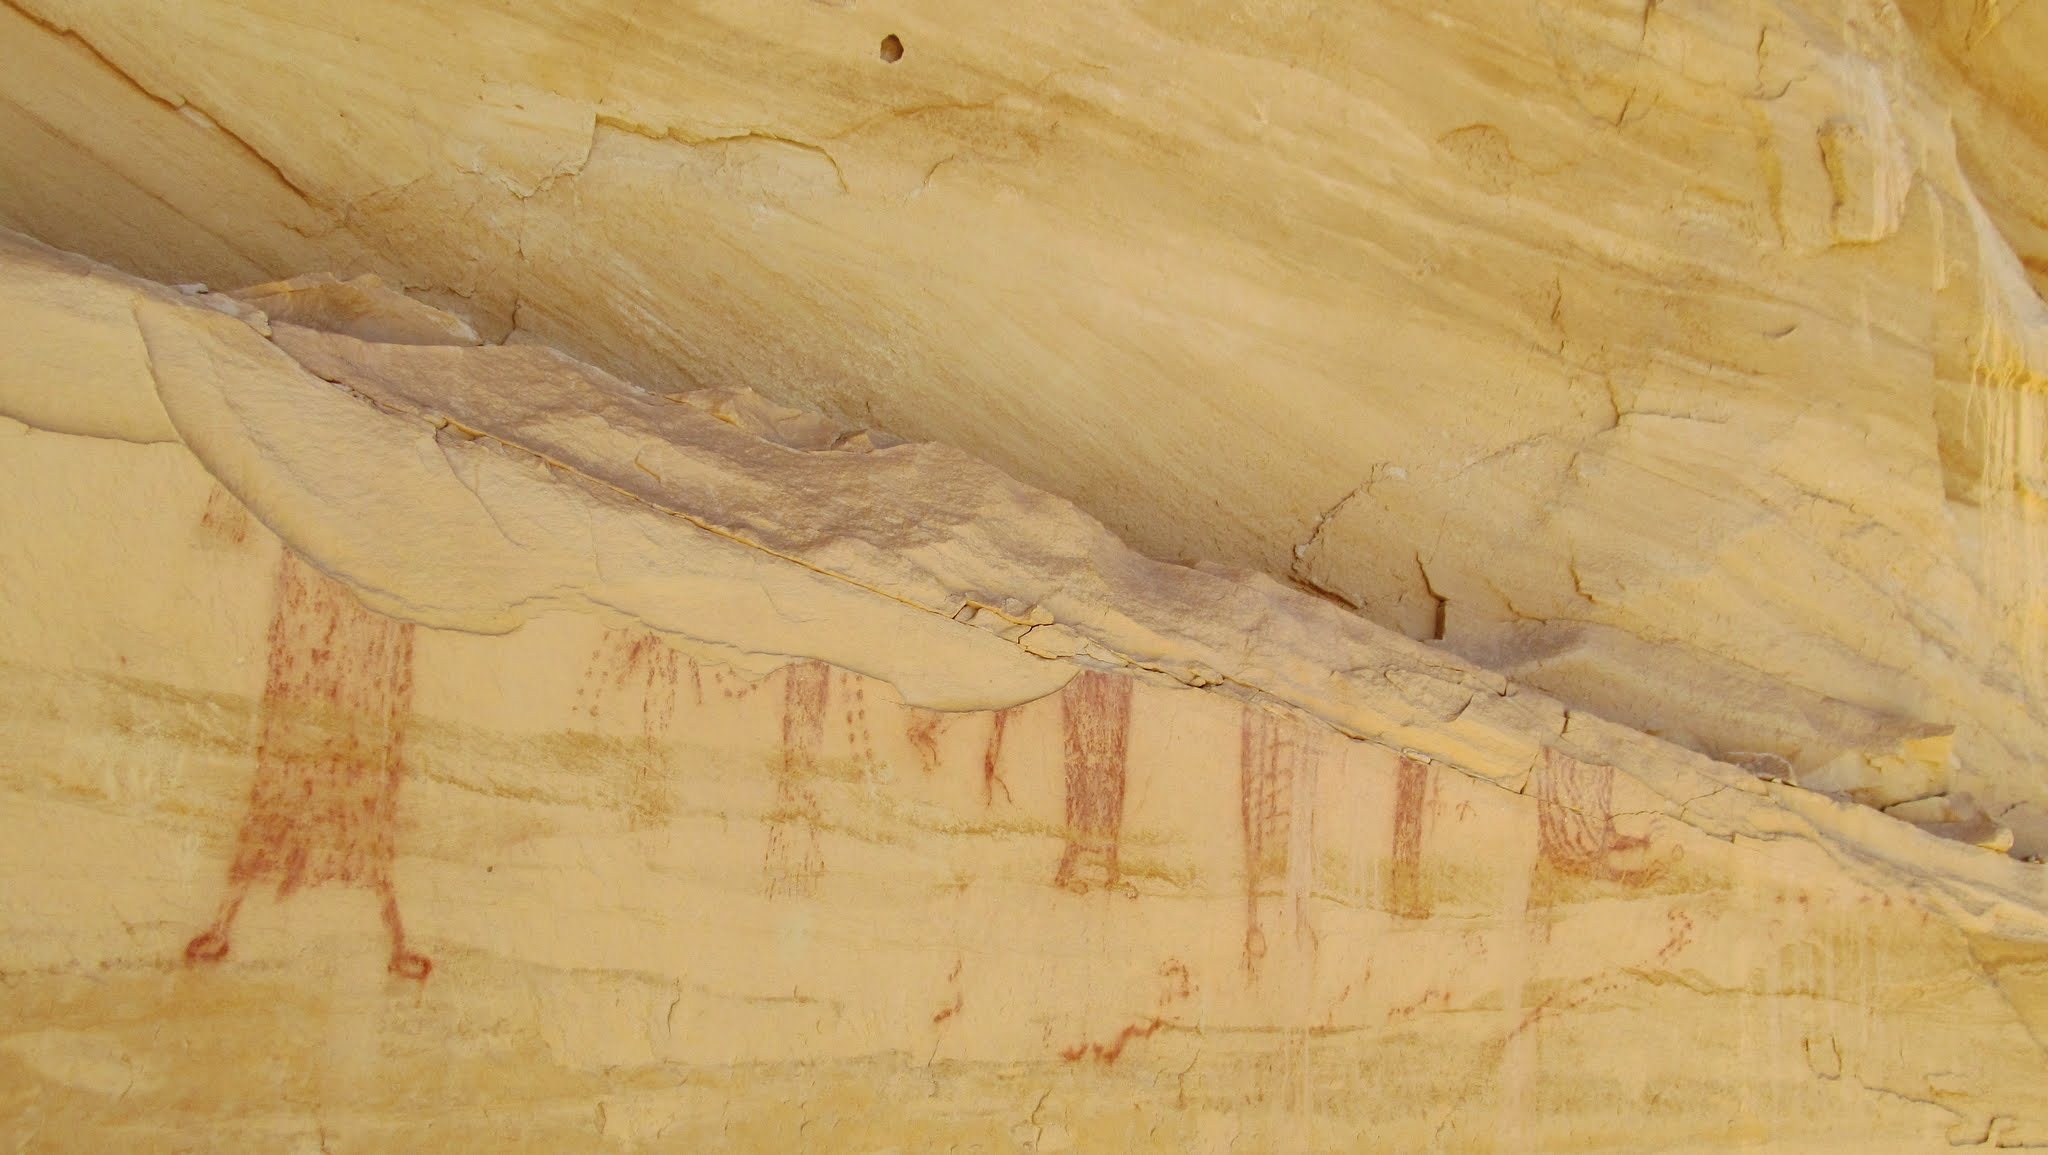 Photo: Locomotive Point pictographs